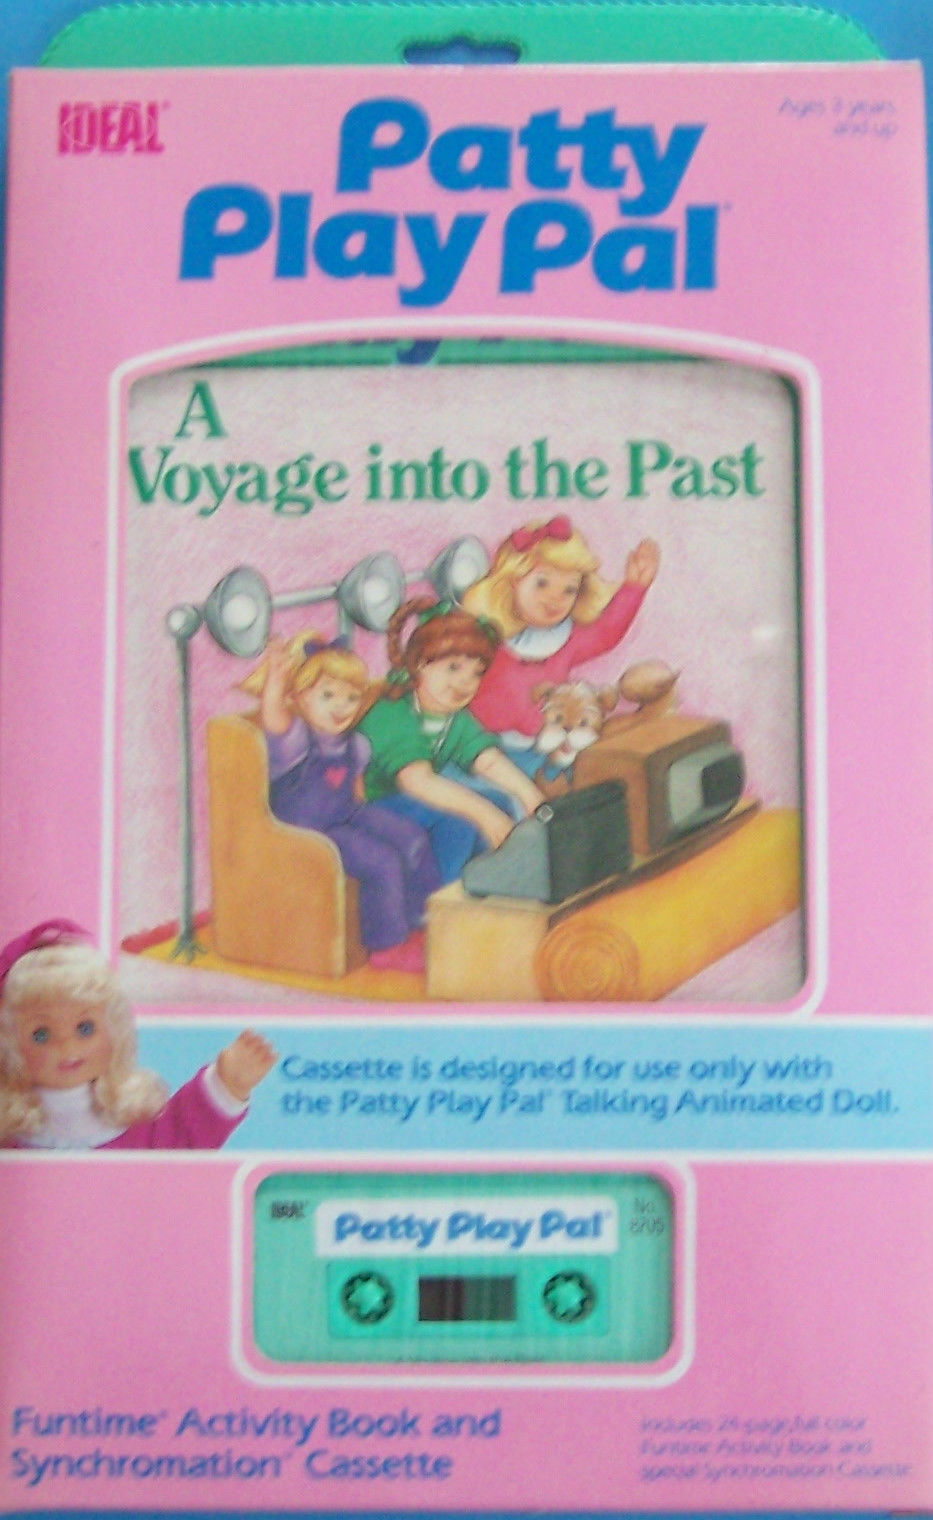 1987 IDEAL TALKING ANIMATED  PATTY PLAY PAL A VOYAGE INTO THE PAST BOOK CASSETTE - $18.81